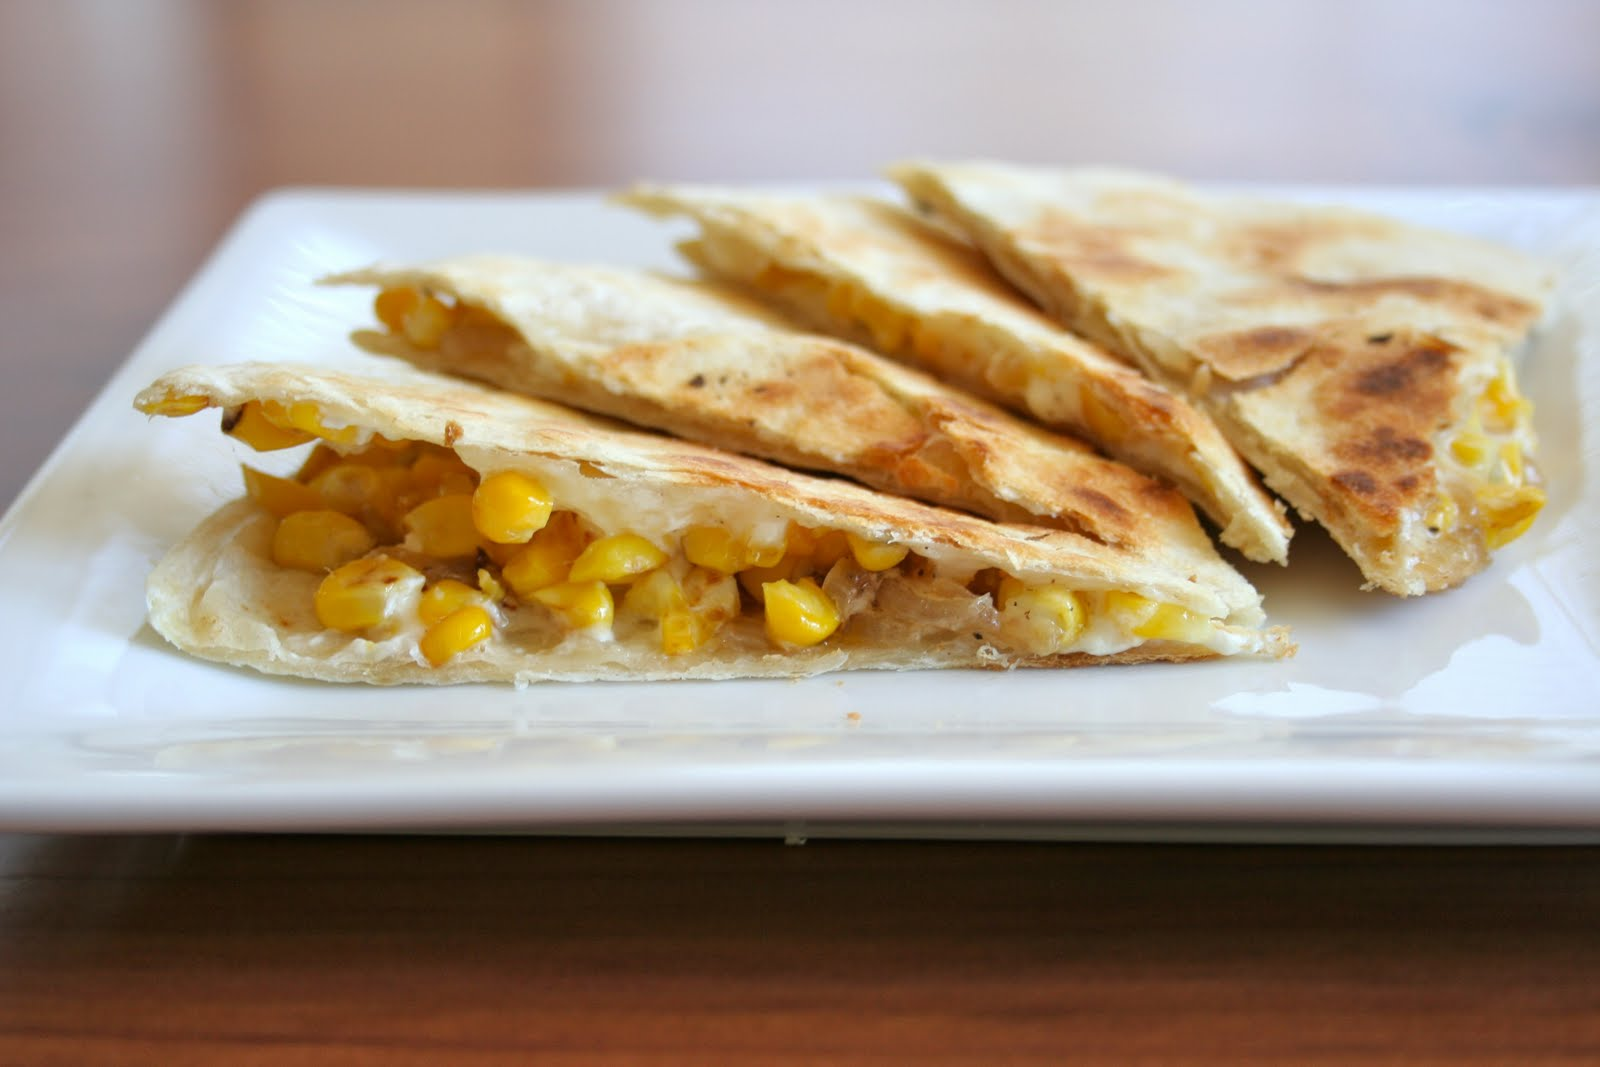 Roast Corn, Goat Cheese, and Caramelized Onion Quesadilla